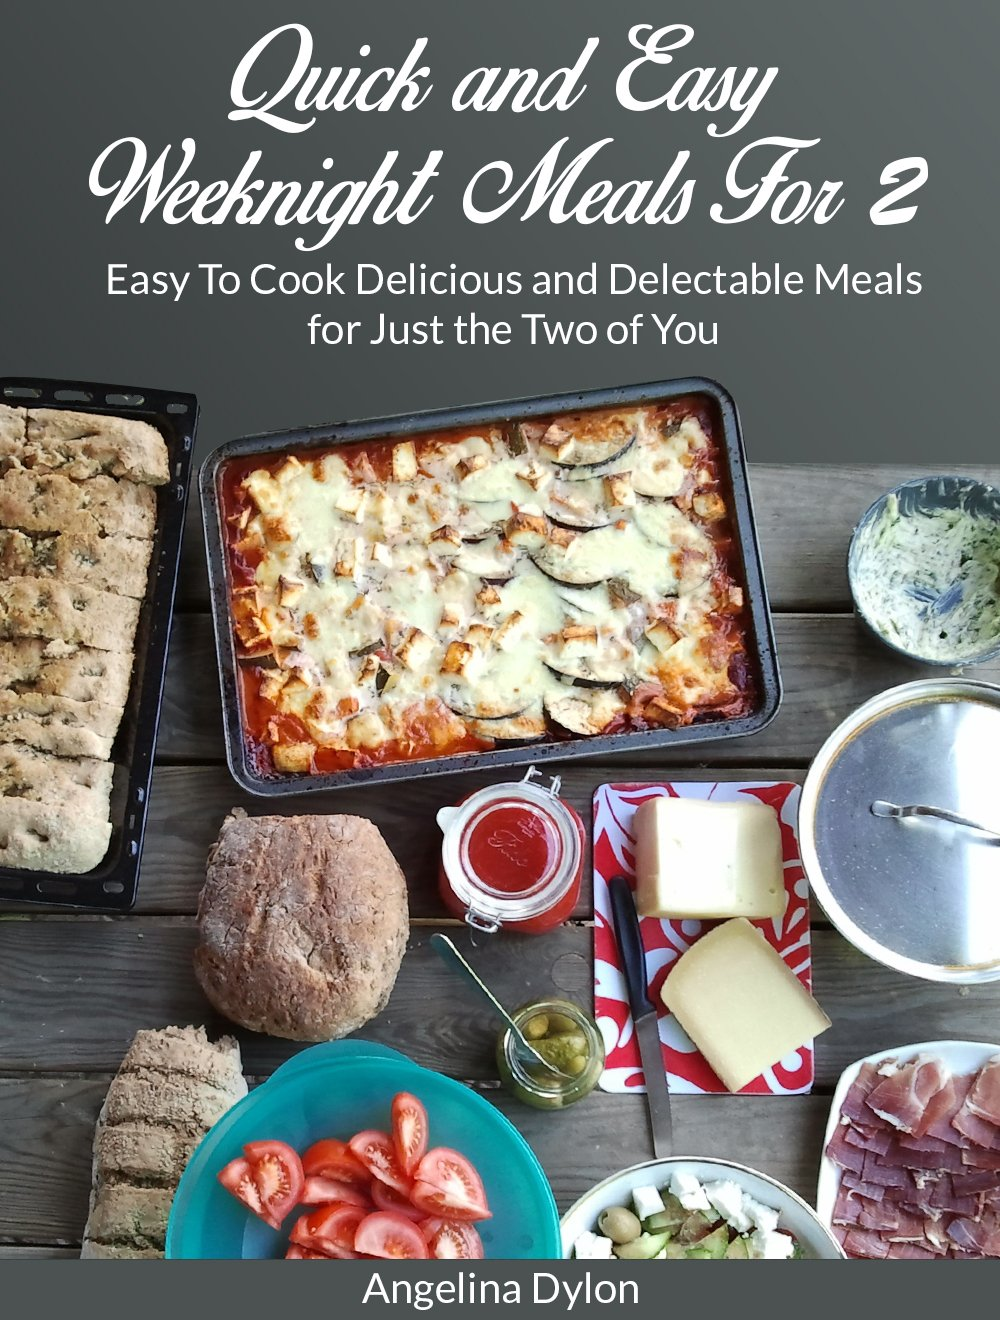 Quick and Easy Weeknight Meals For 2